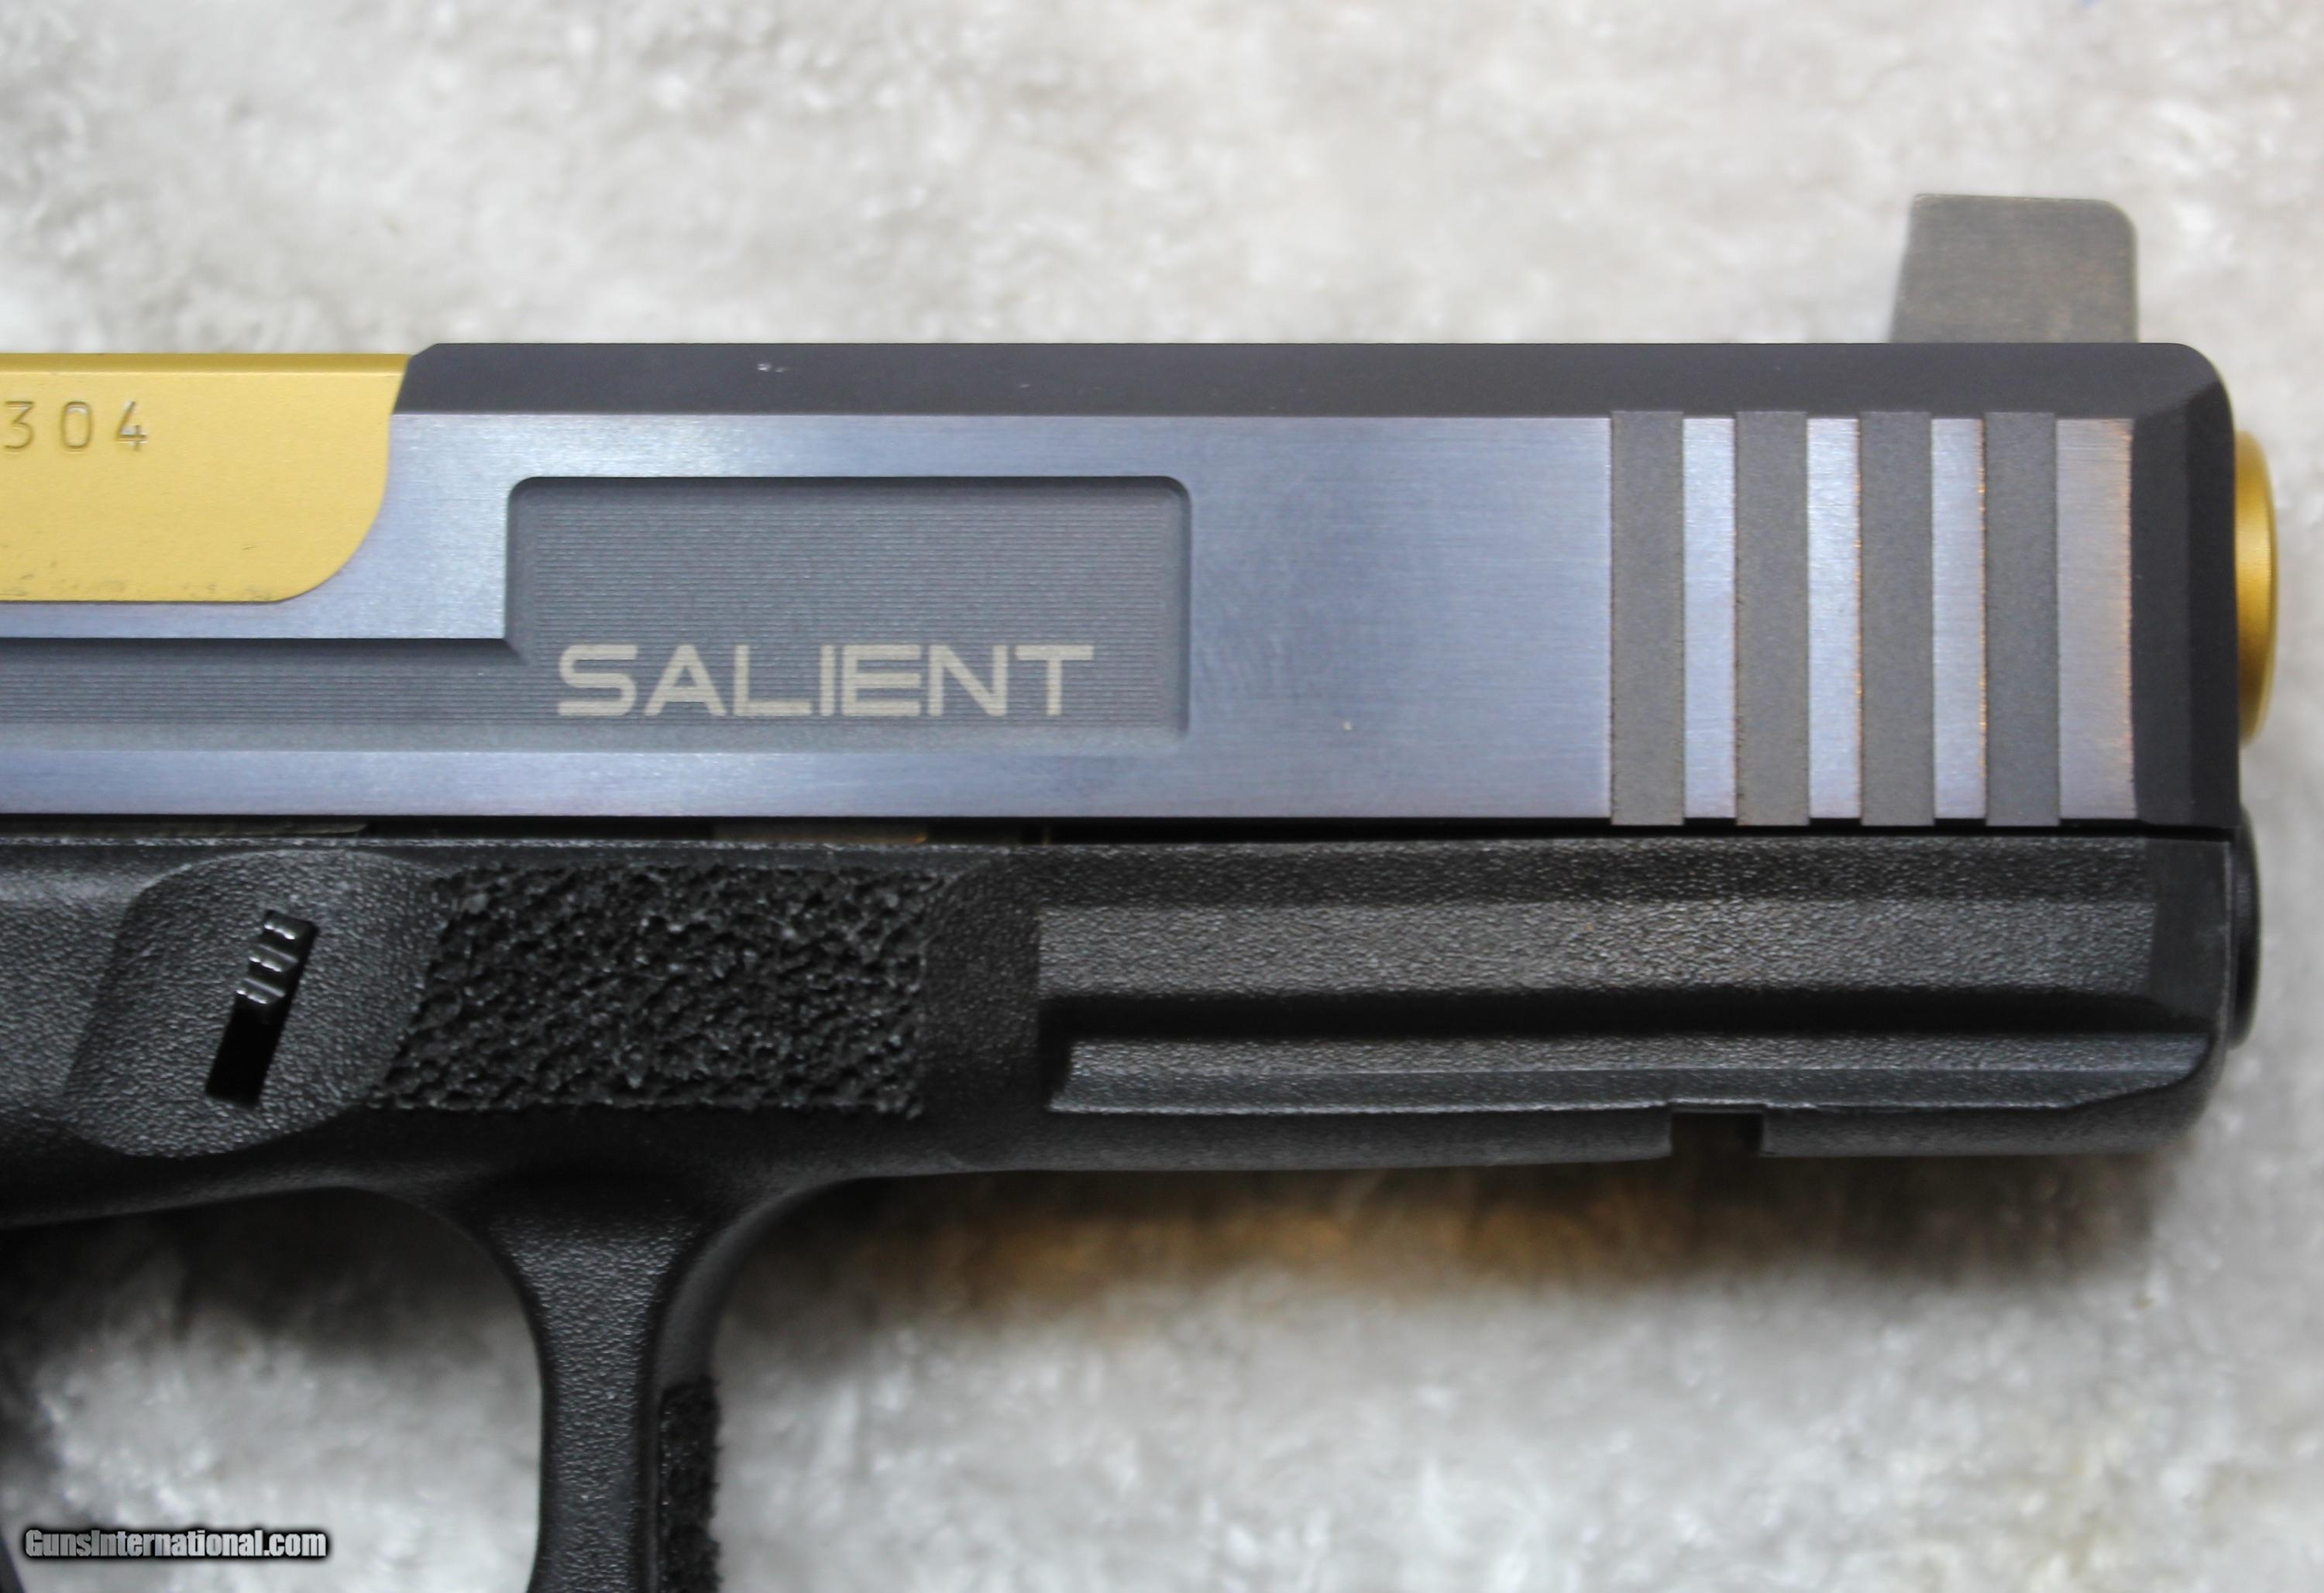 Salient Arms Tier 2 Glock 17 9mm With Rmr06 Hard Case Parts Diagram Further Kimber 1911 Exploded View Gsg 6